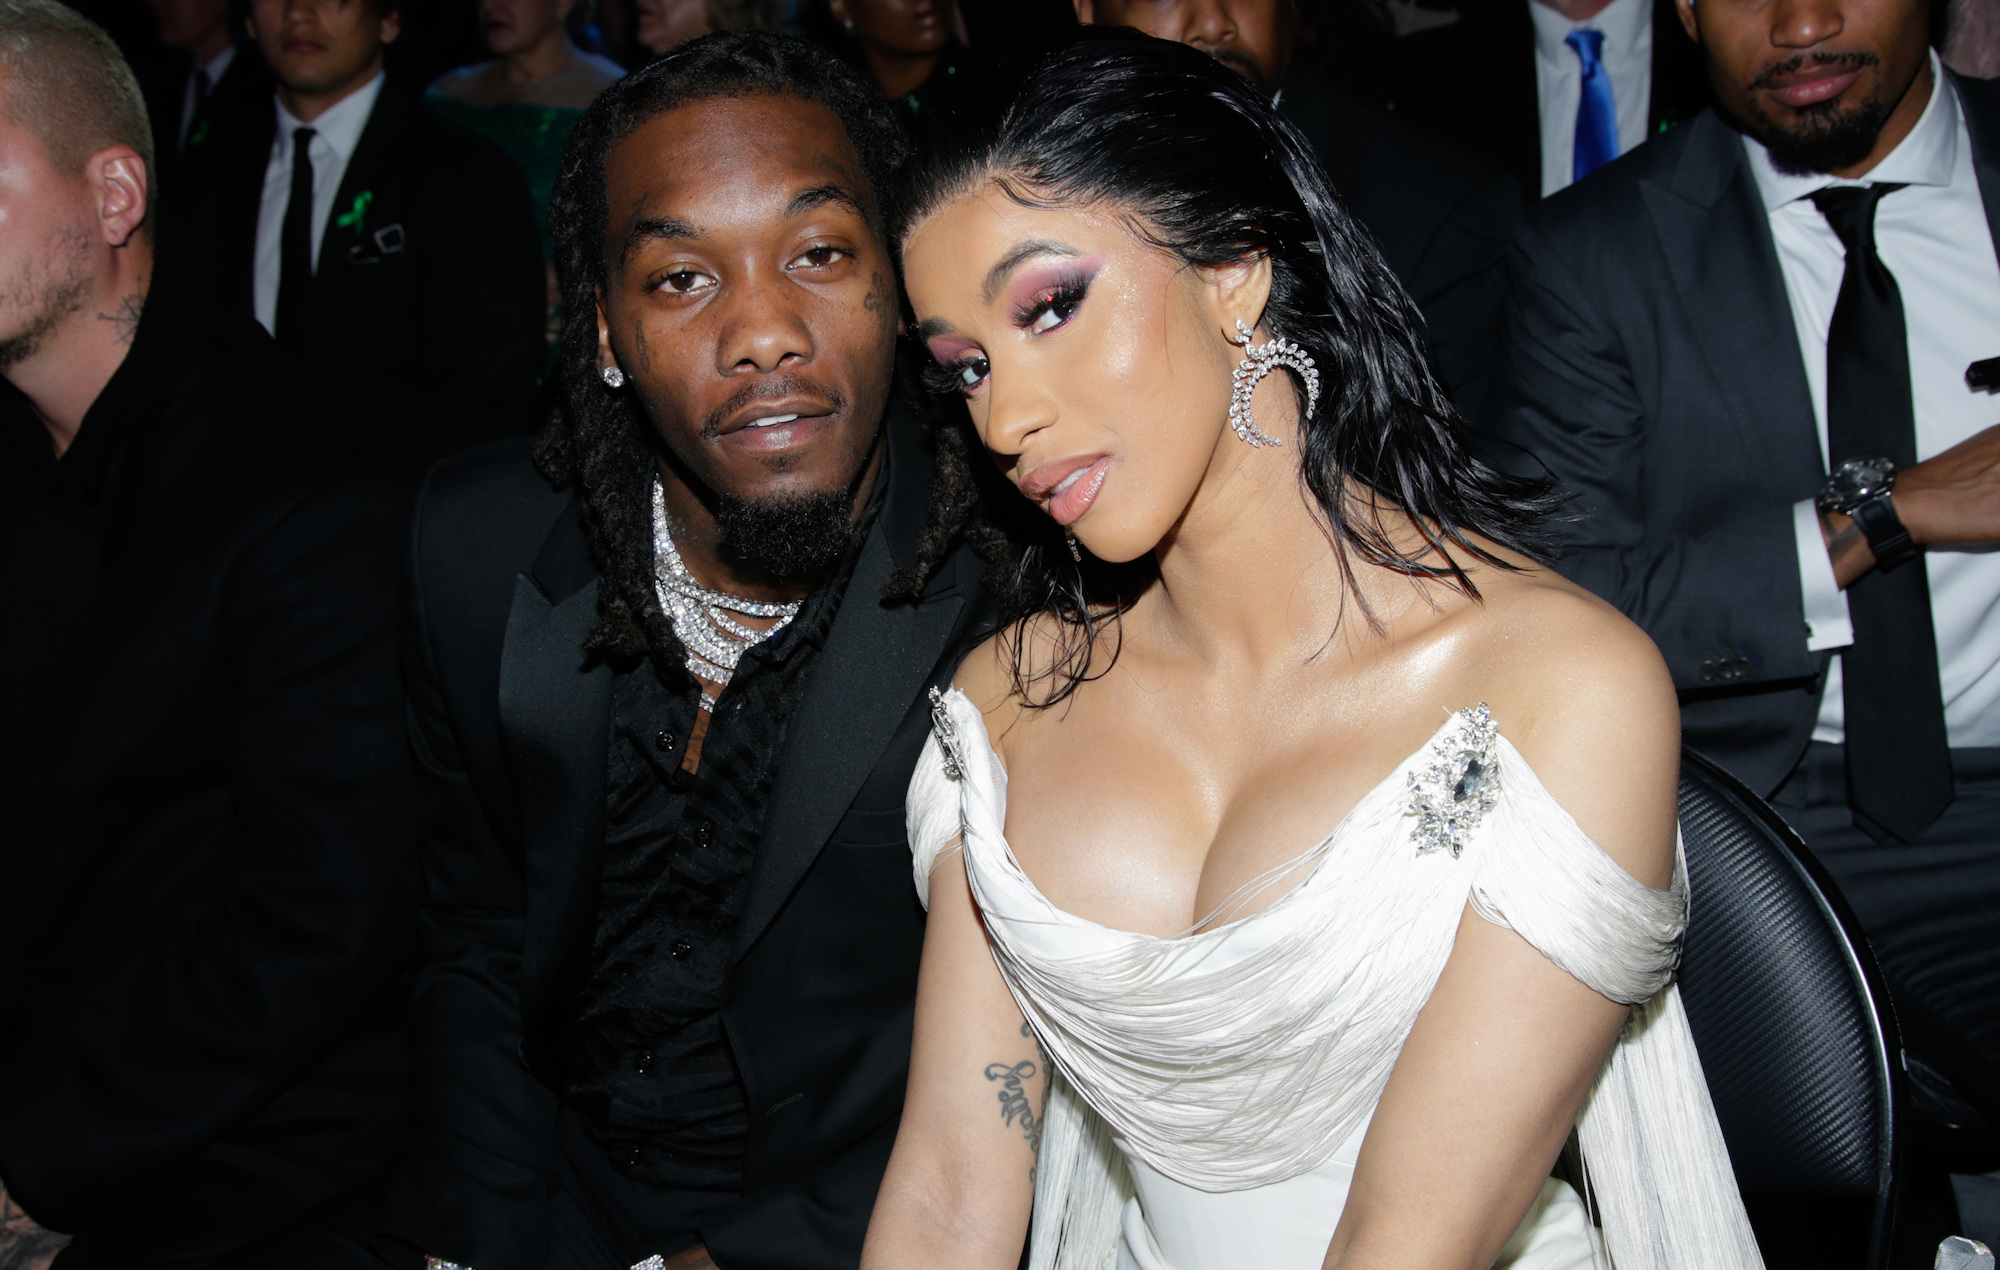 Cardi B Rapper: Offset Responds To Backlash Over Claims That Cardi B Is